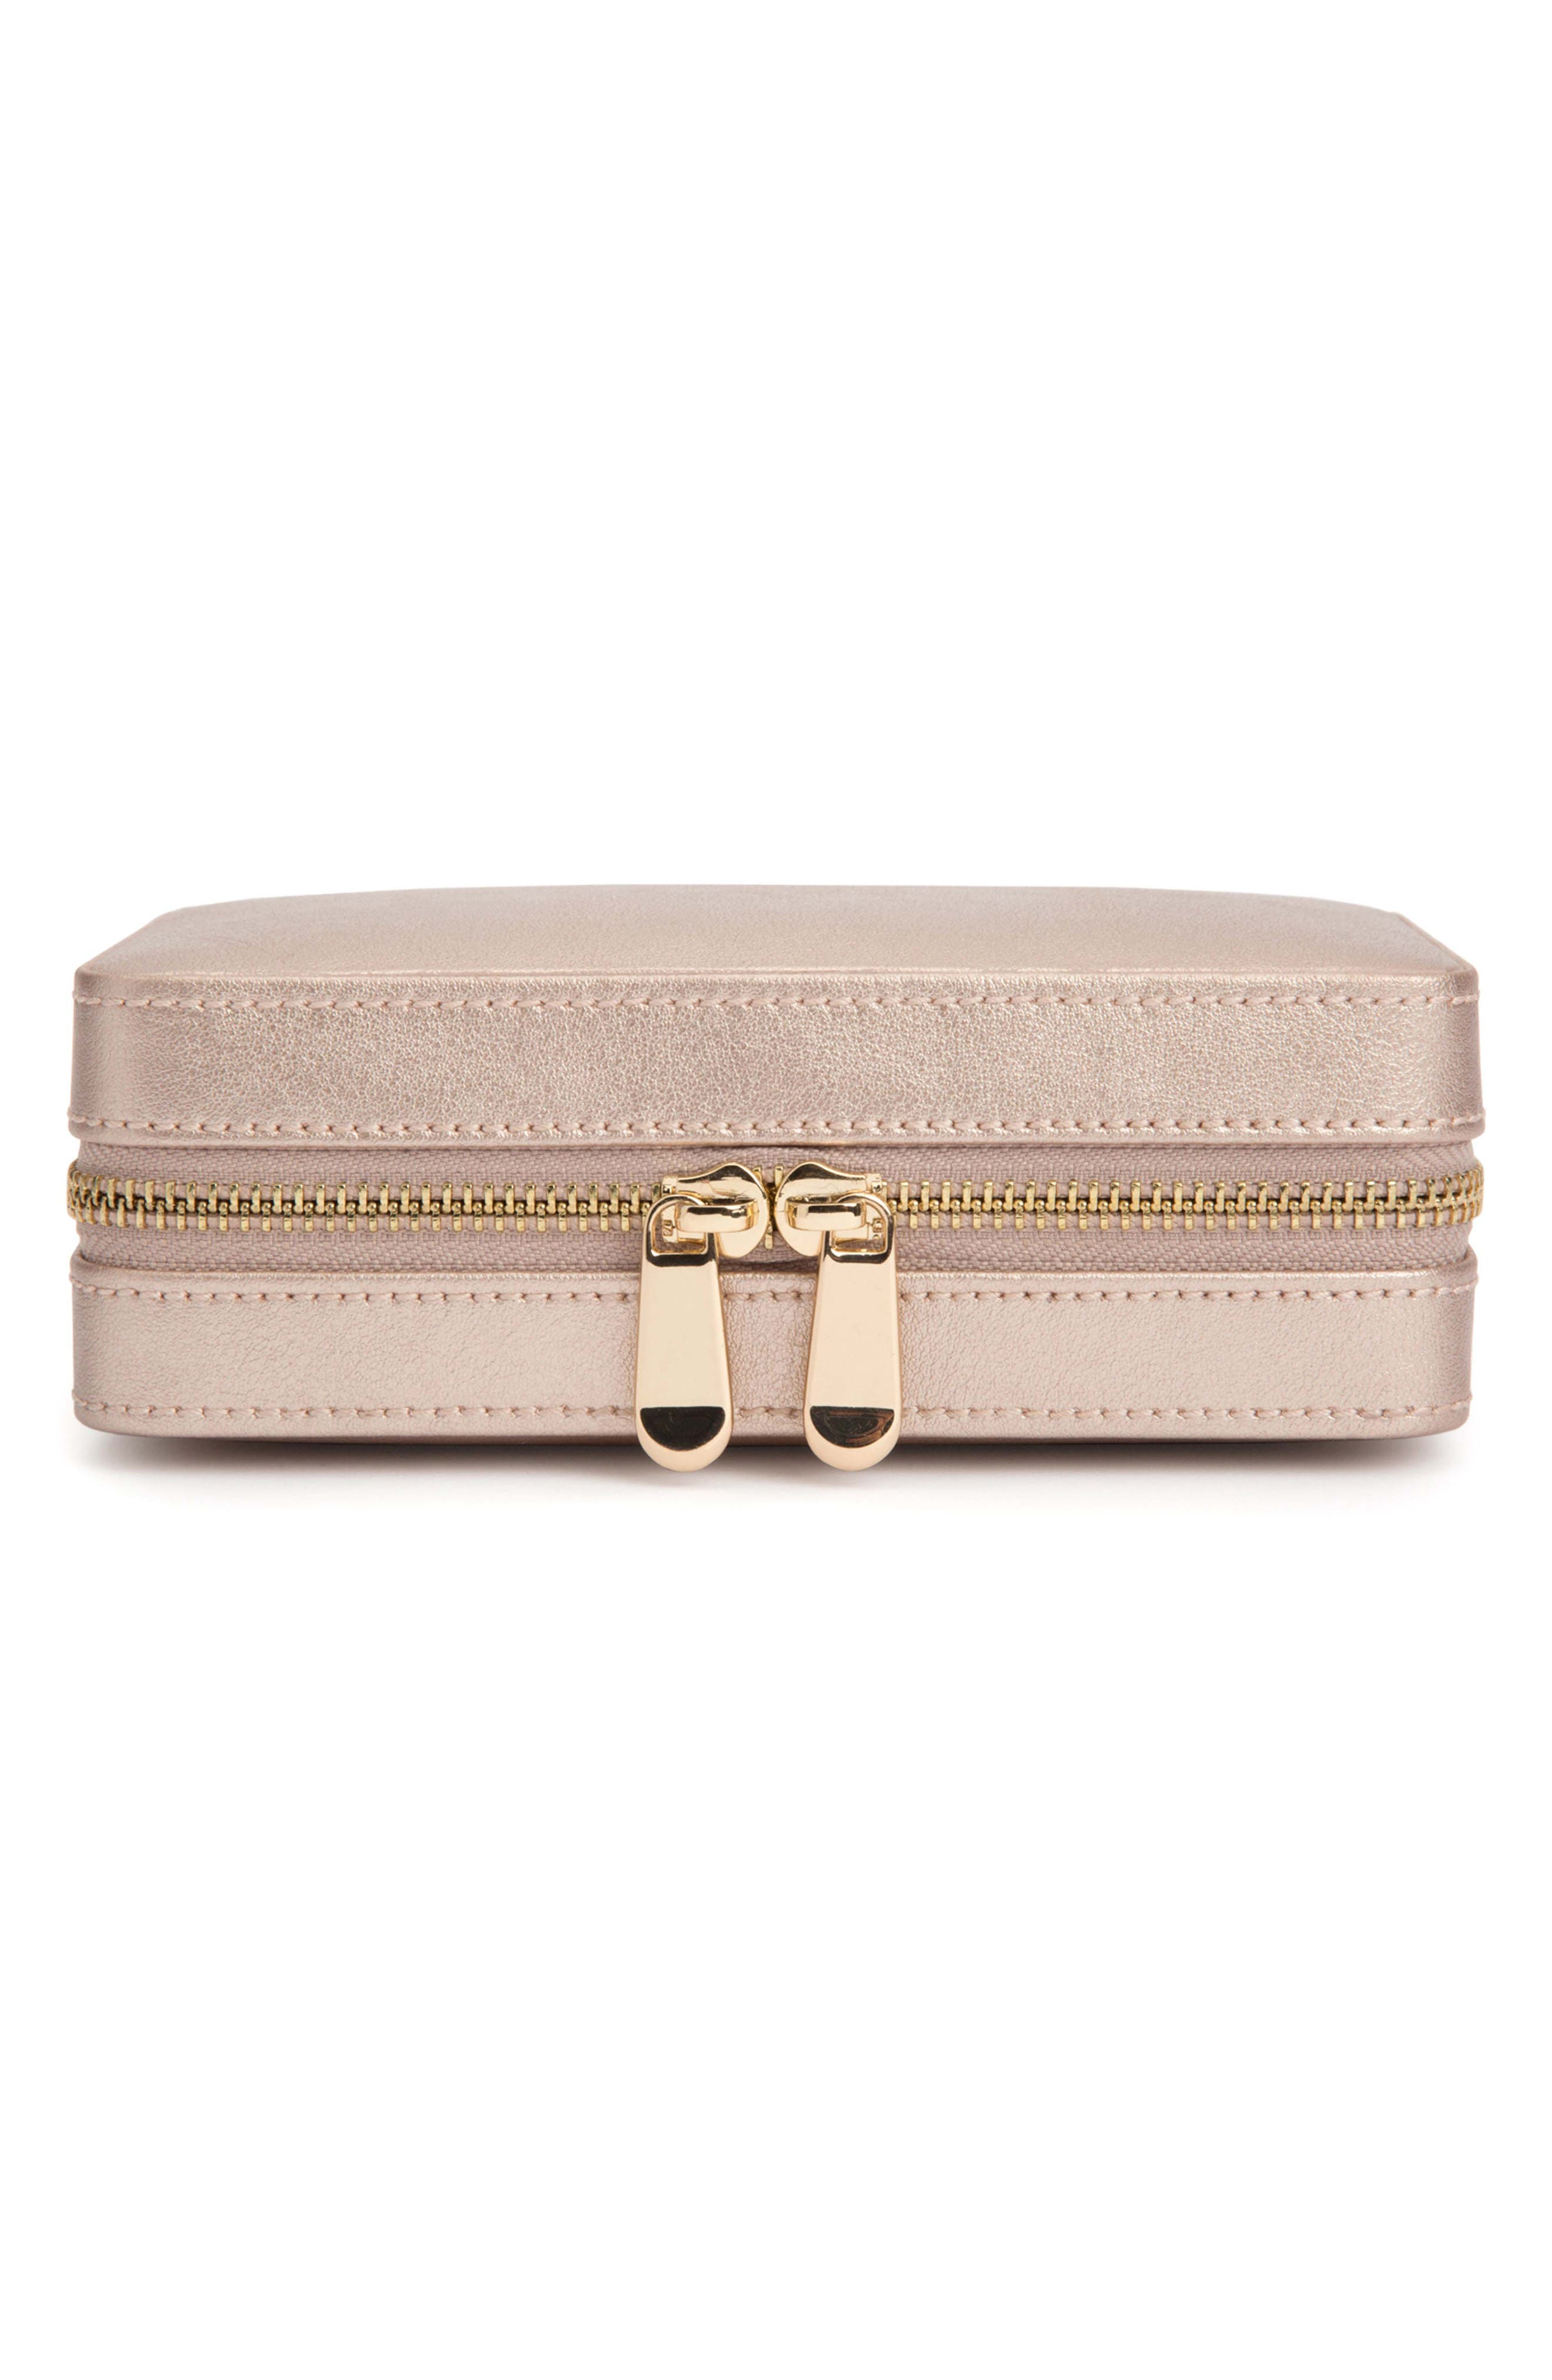 Palermo Zip Jewelry Case,                         Main,                         color, ROSE GOLD